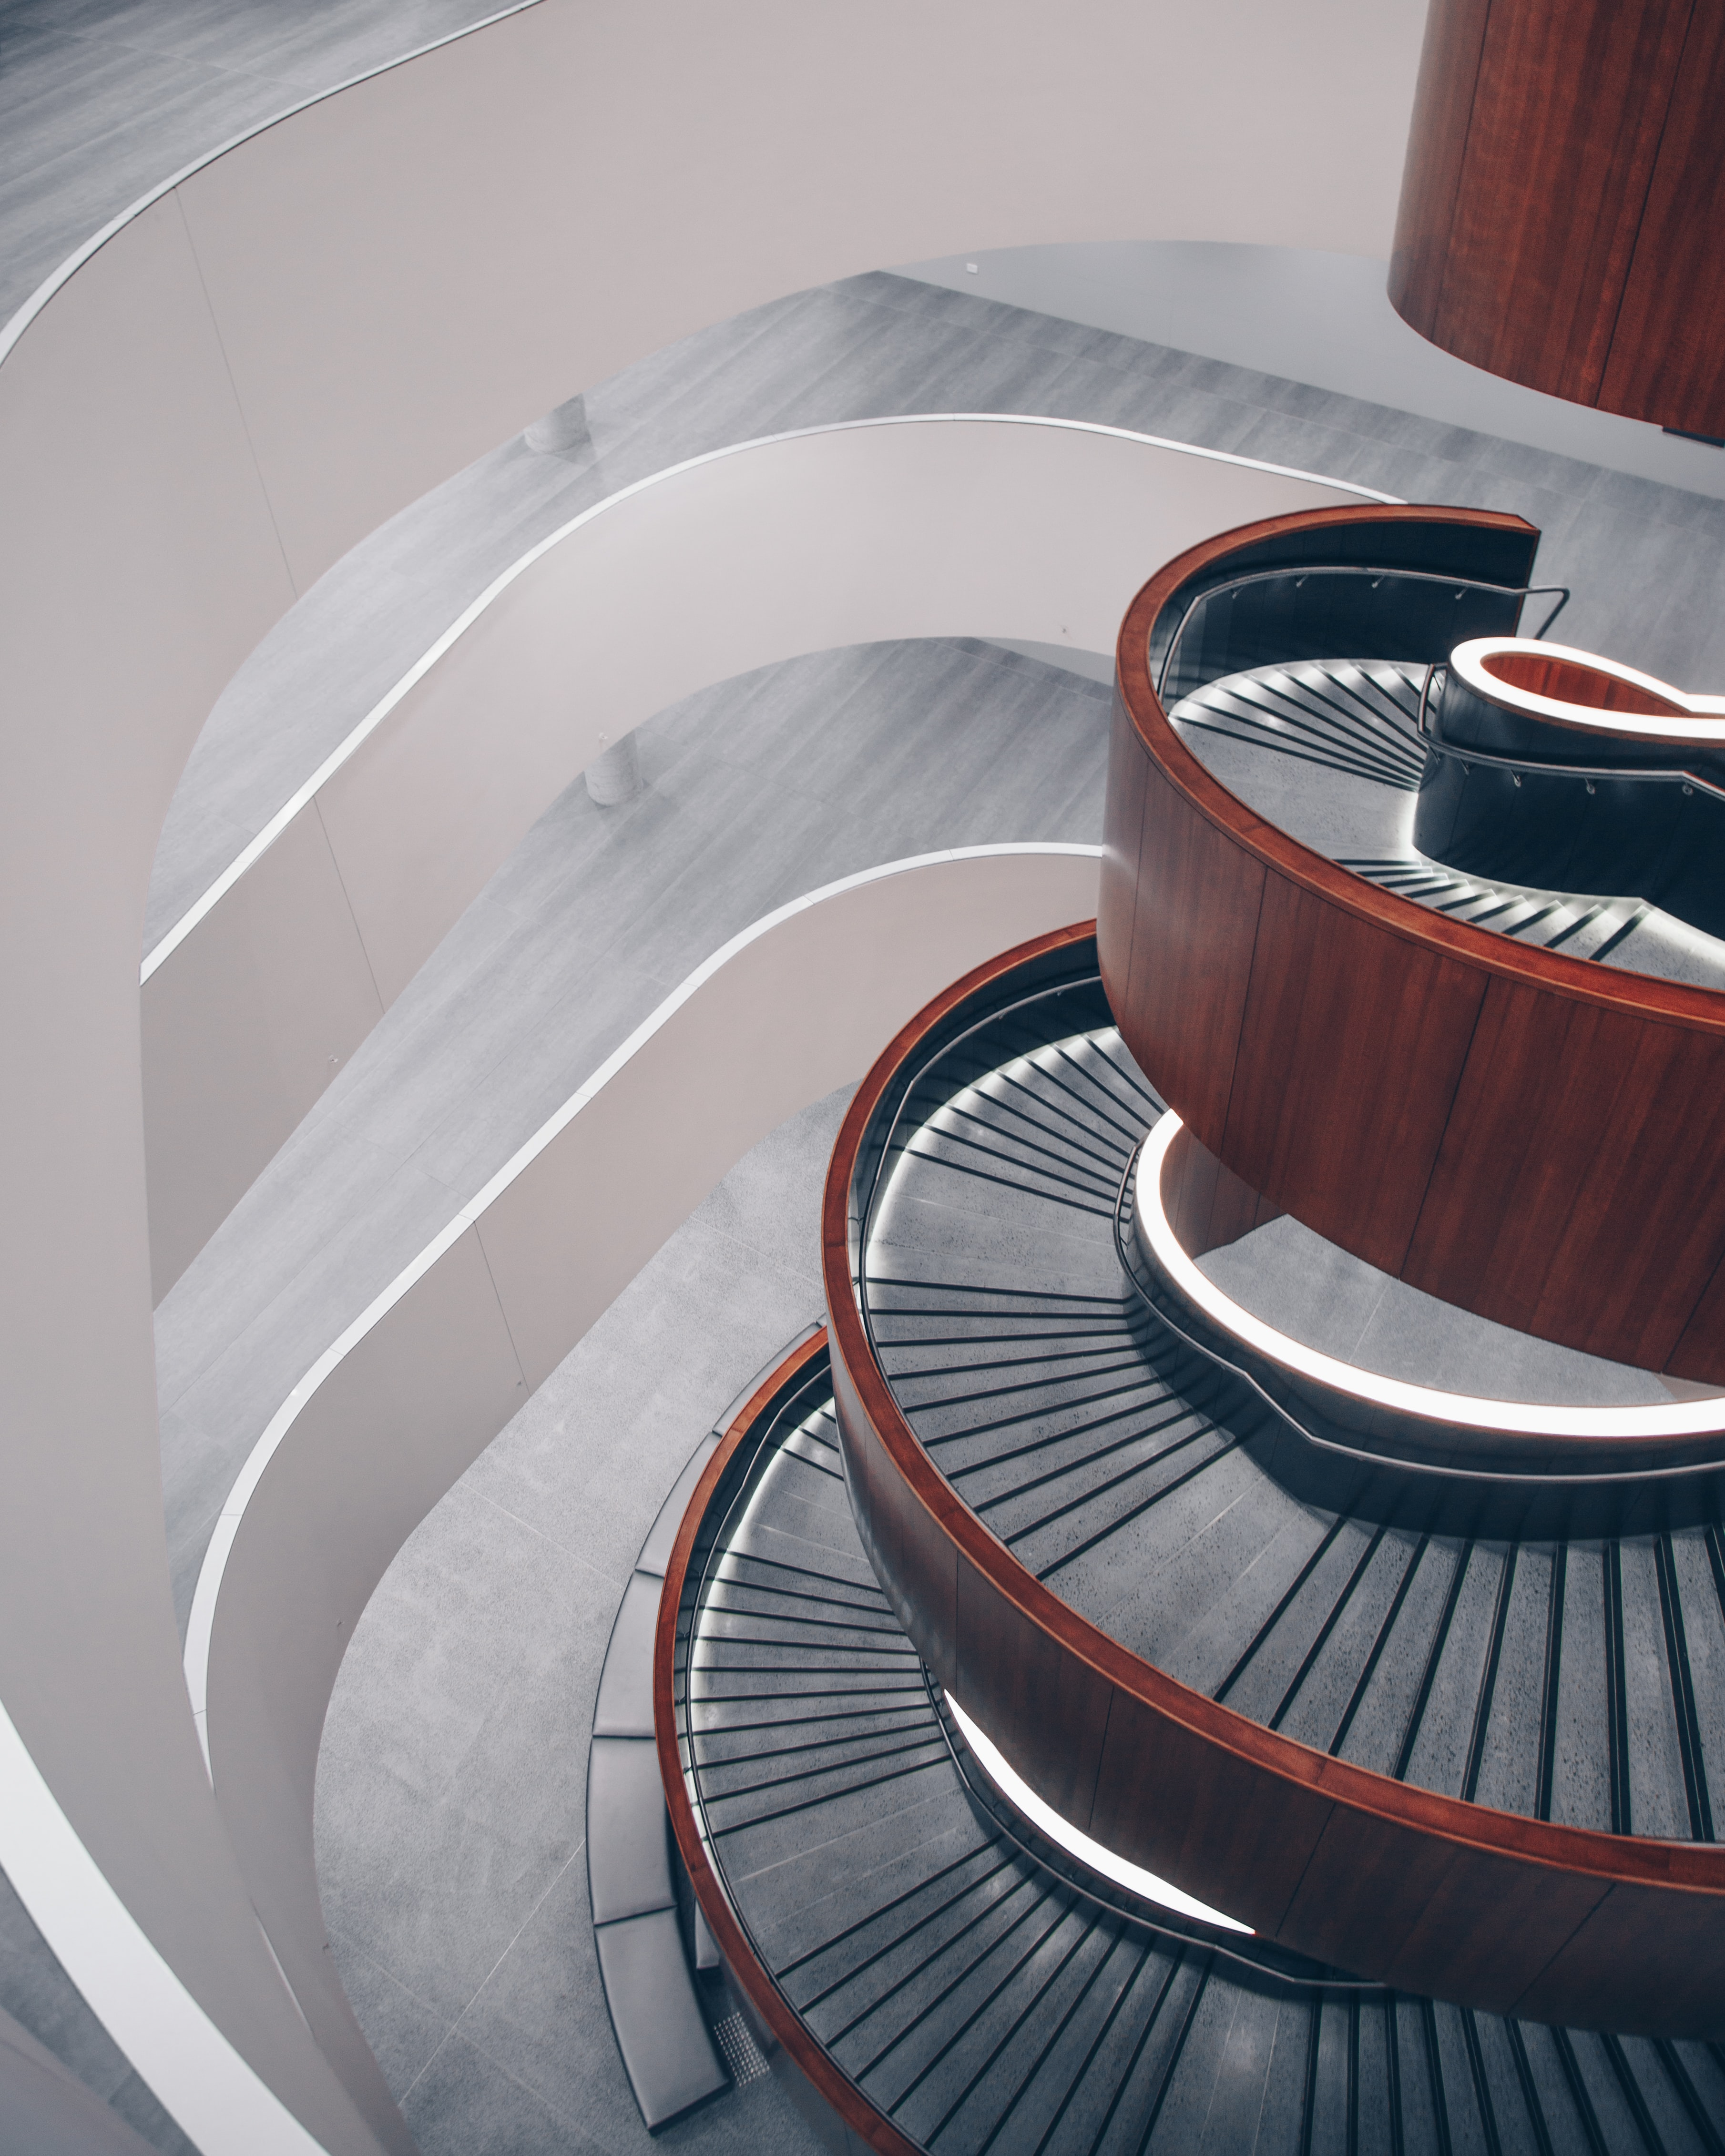 An empty spiral staircase in a modern building in Sydney